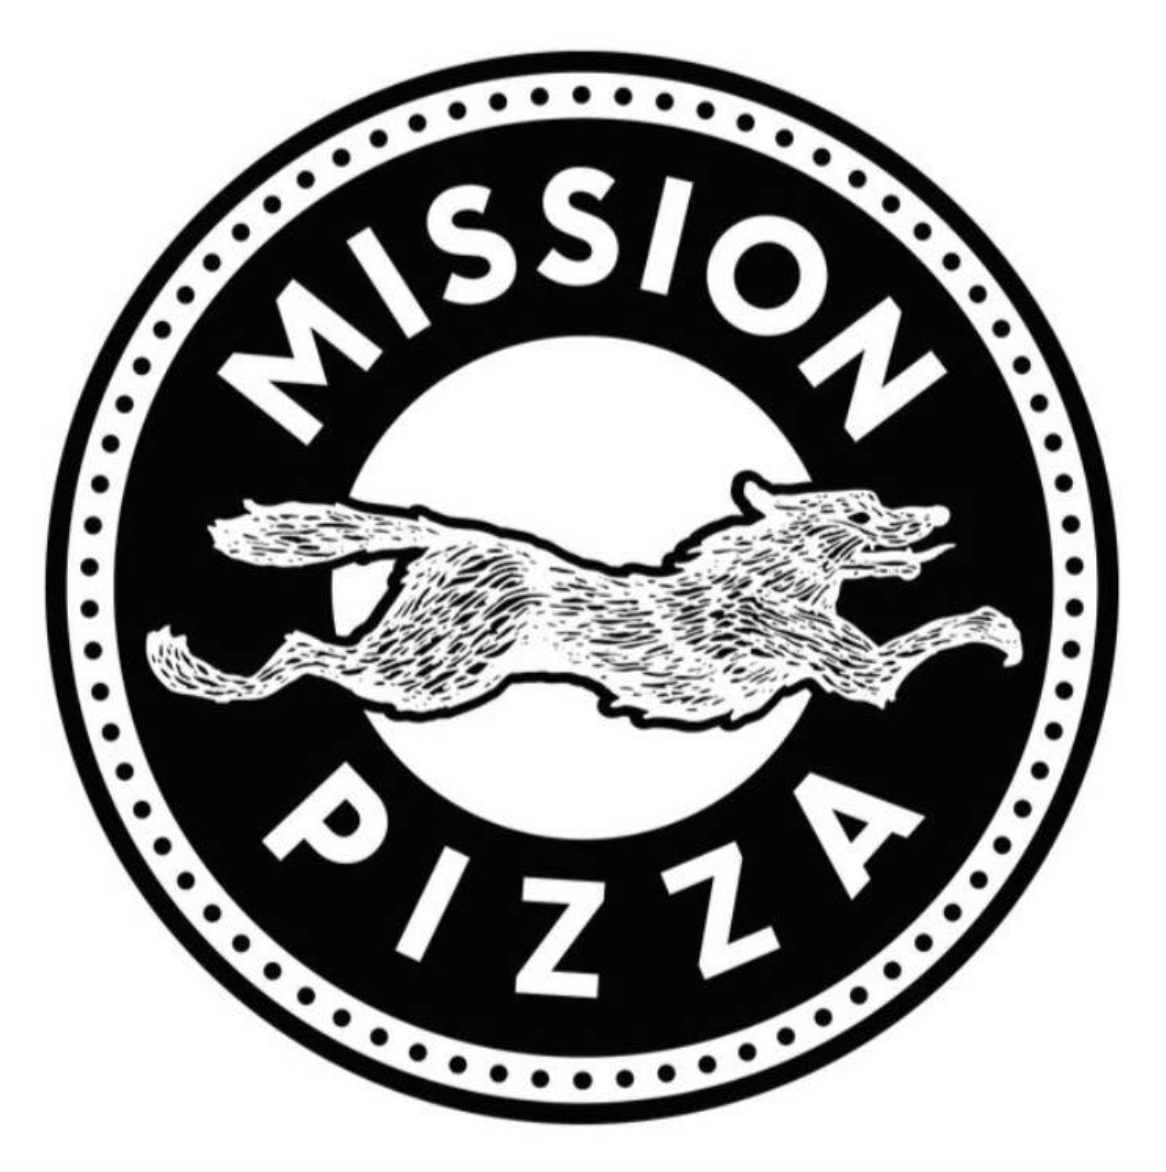 - A quiet mission to save the planet one pizza at a time. We are small but we are bold and brave. This is not a business, it's a crusade to change people's perceptions, culture and beliefs about food.Oh and in our opinion we make the finest, artisan, wood-fired vegetarian and vegan pizza you'll taste anywhere.Wood-fired vegetarian and vegan neo-Neapolitan pizza.Serious food for people who don't take food too seriously.